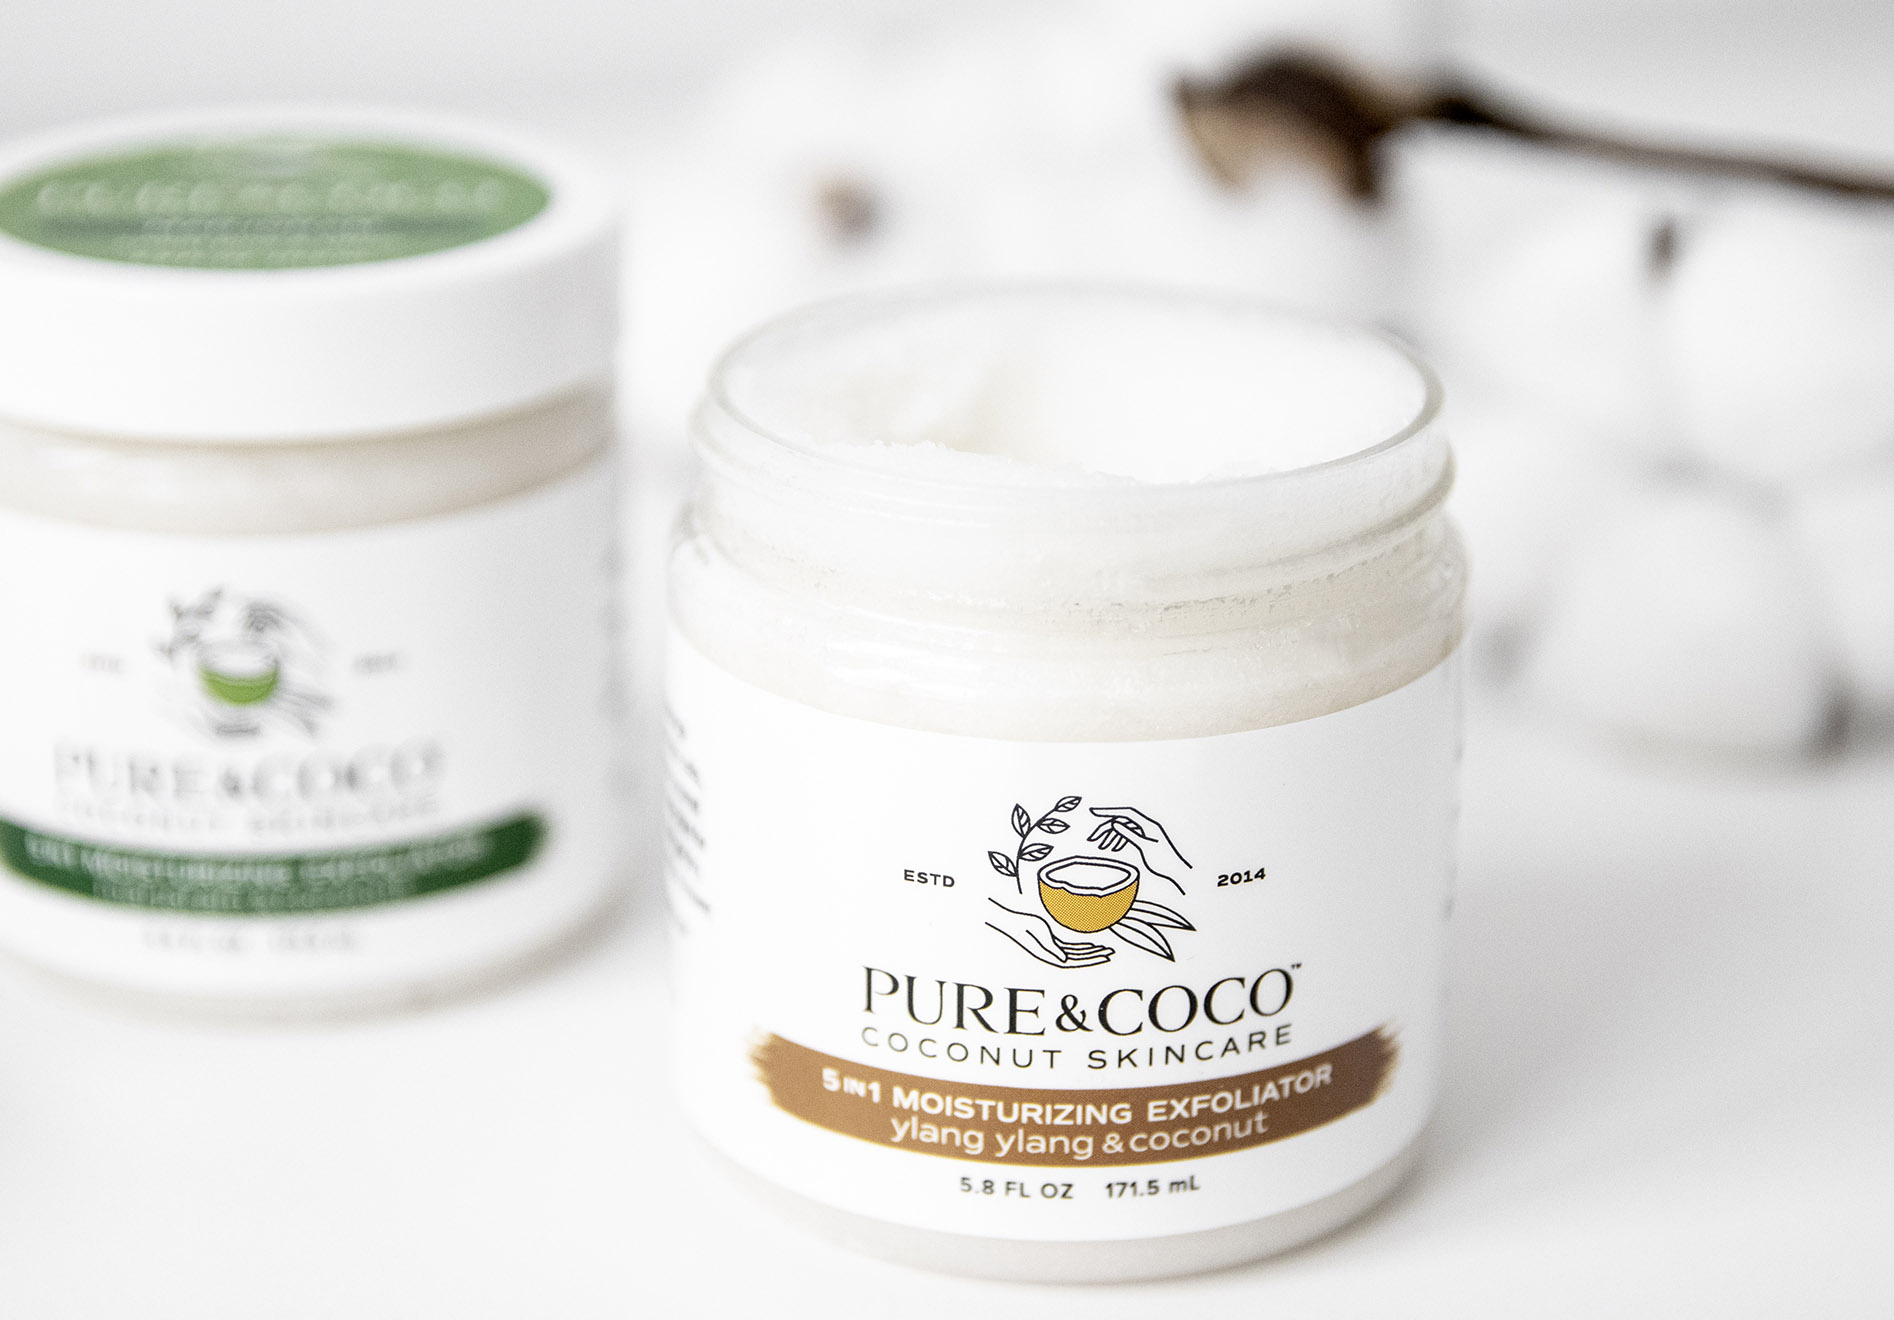 Pure-and-Coco-Moisturizing-Exfoliator-Ylang-Ylang-and-Coconut-1